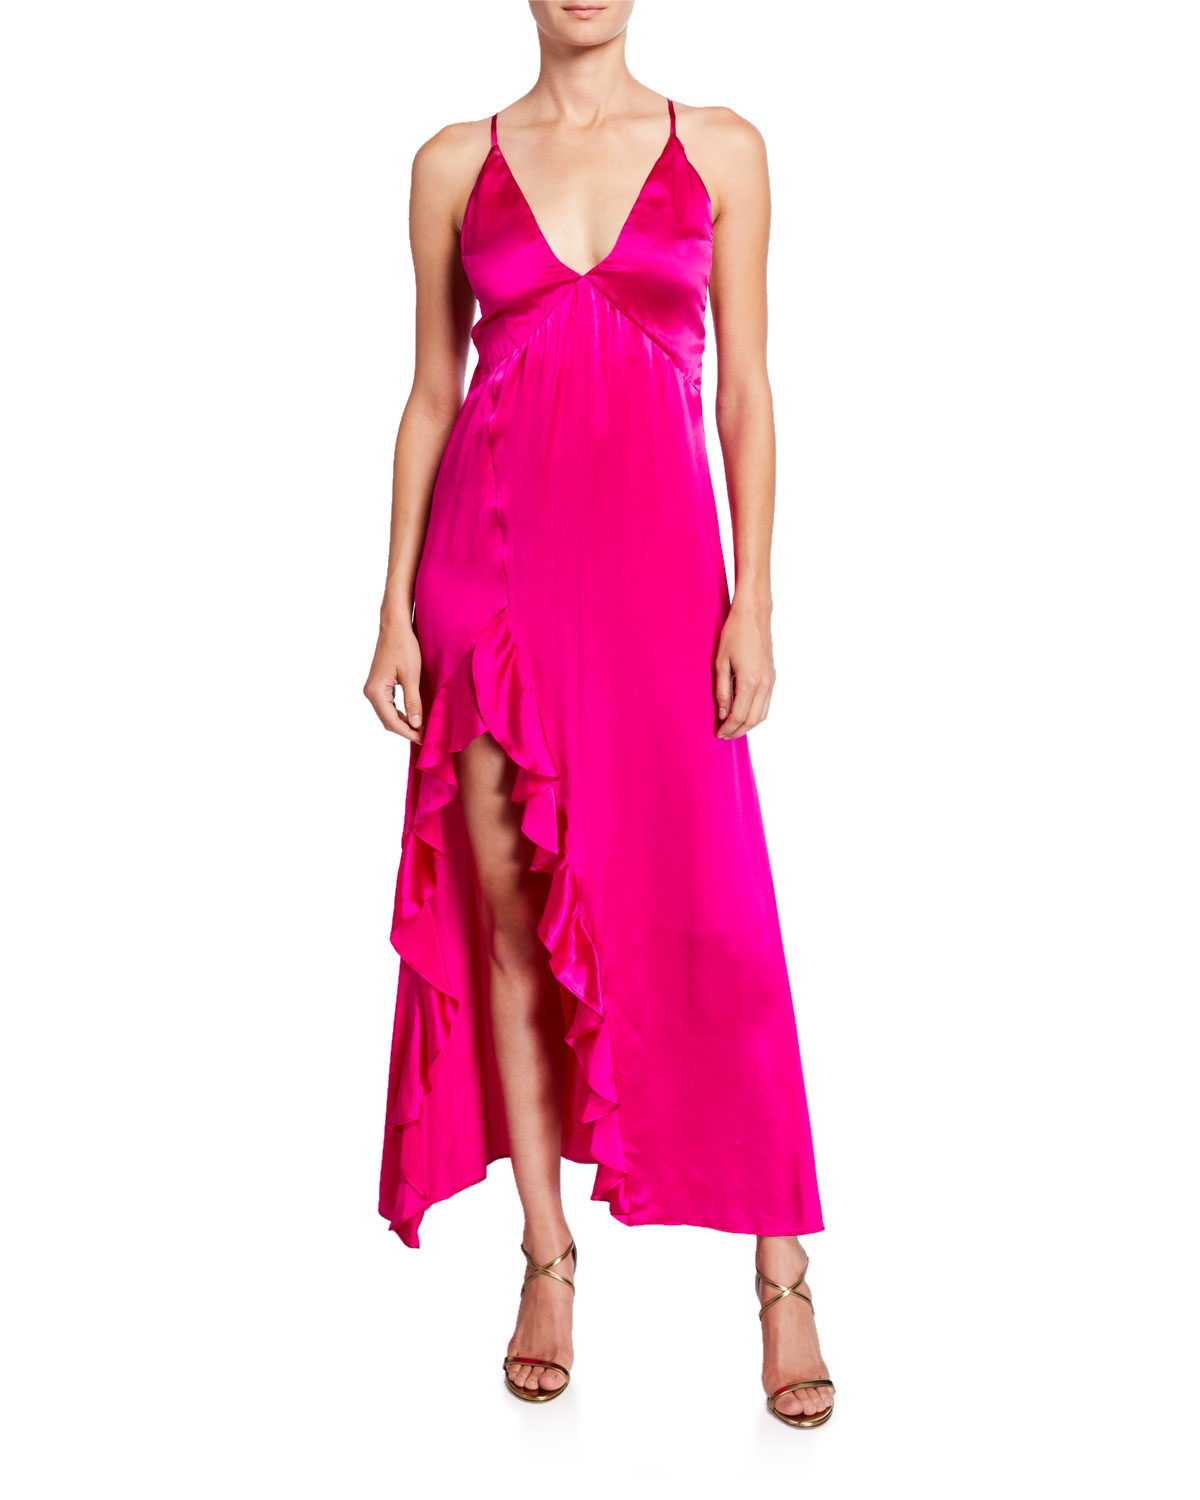 Nightcap Clothing Getaway V-Neck Cross-Back Satin Slip Dress w/ Ruffled Slit